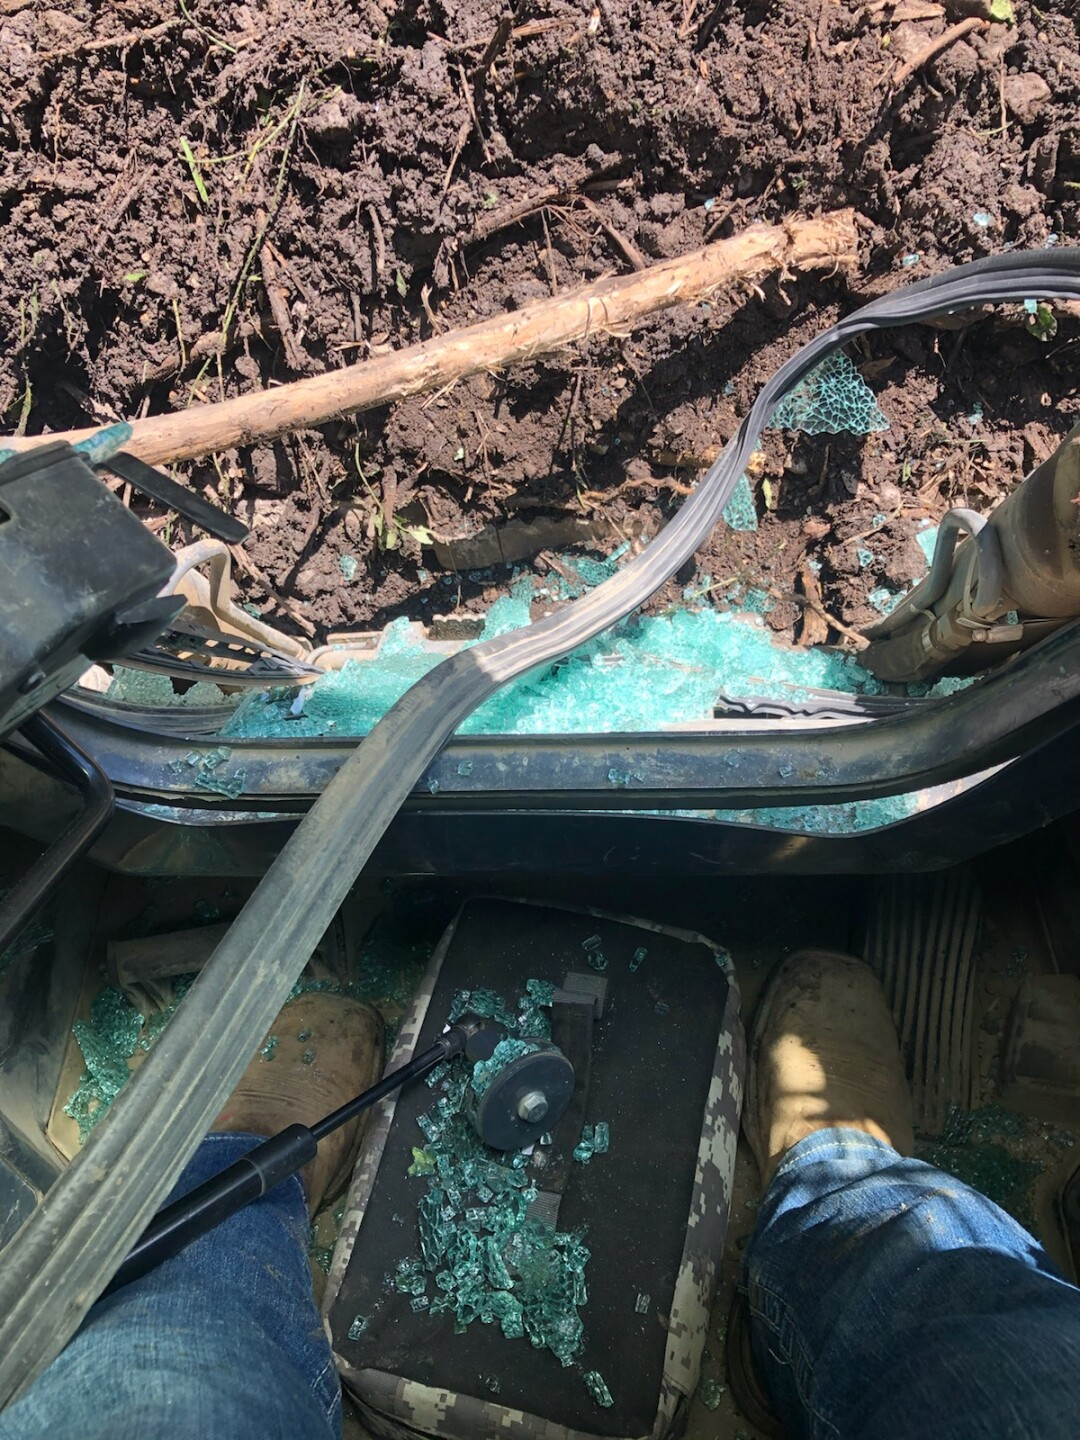 A stray golf ball hit a construction vehicle working on Wasson Way Trail in June.